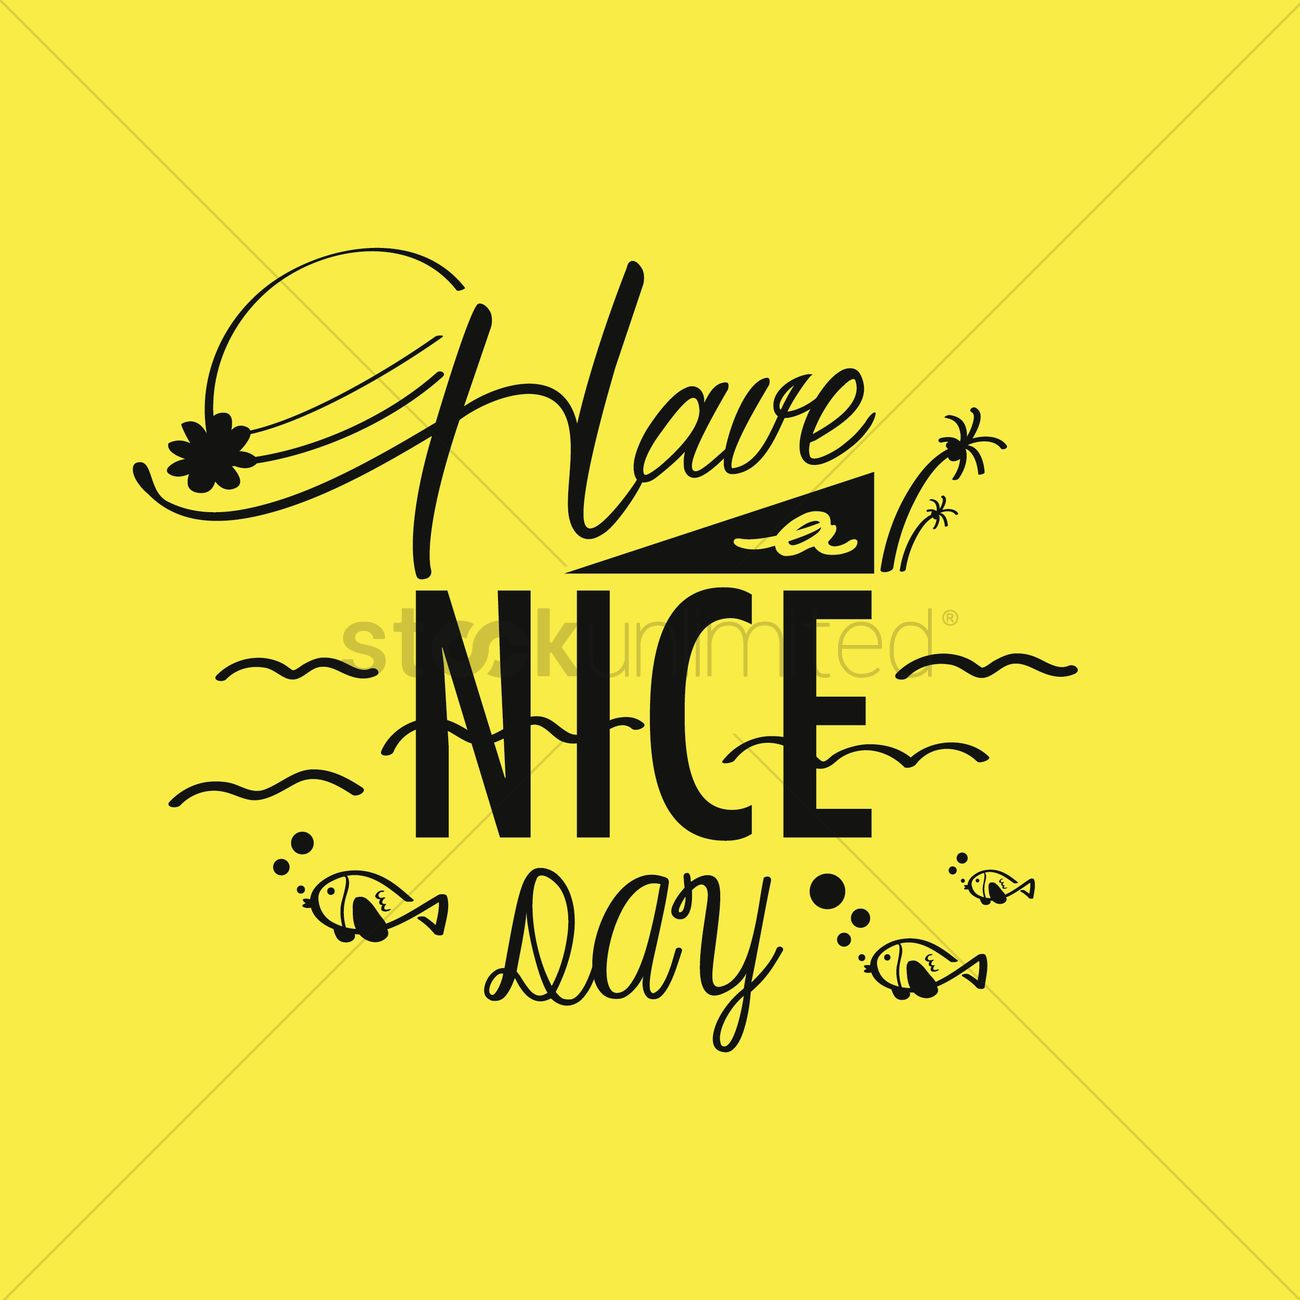 Have A Nice Day Wallpaper Vector Image 1791358 Stockunlimited